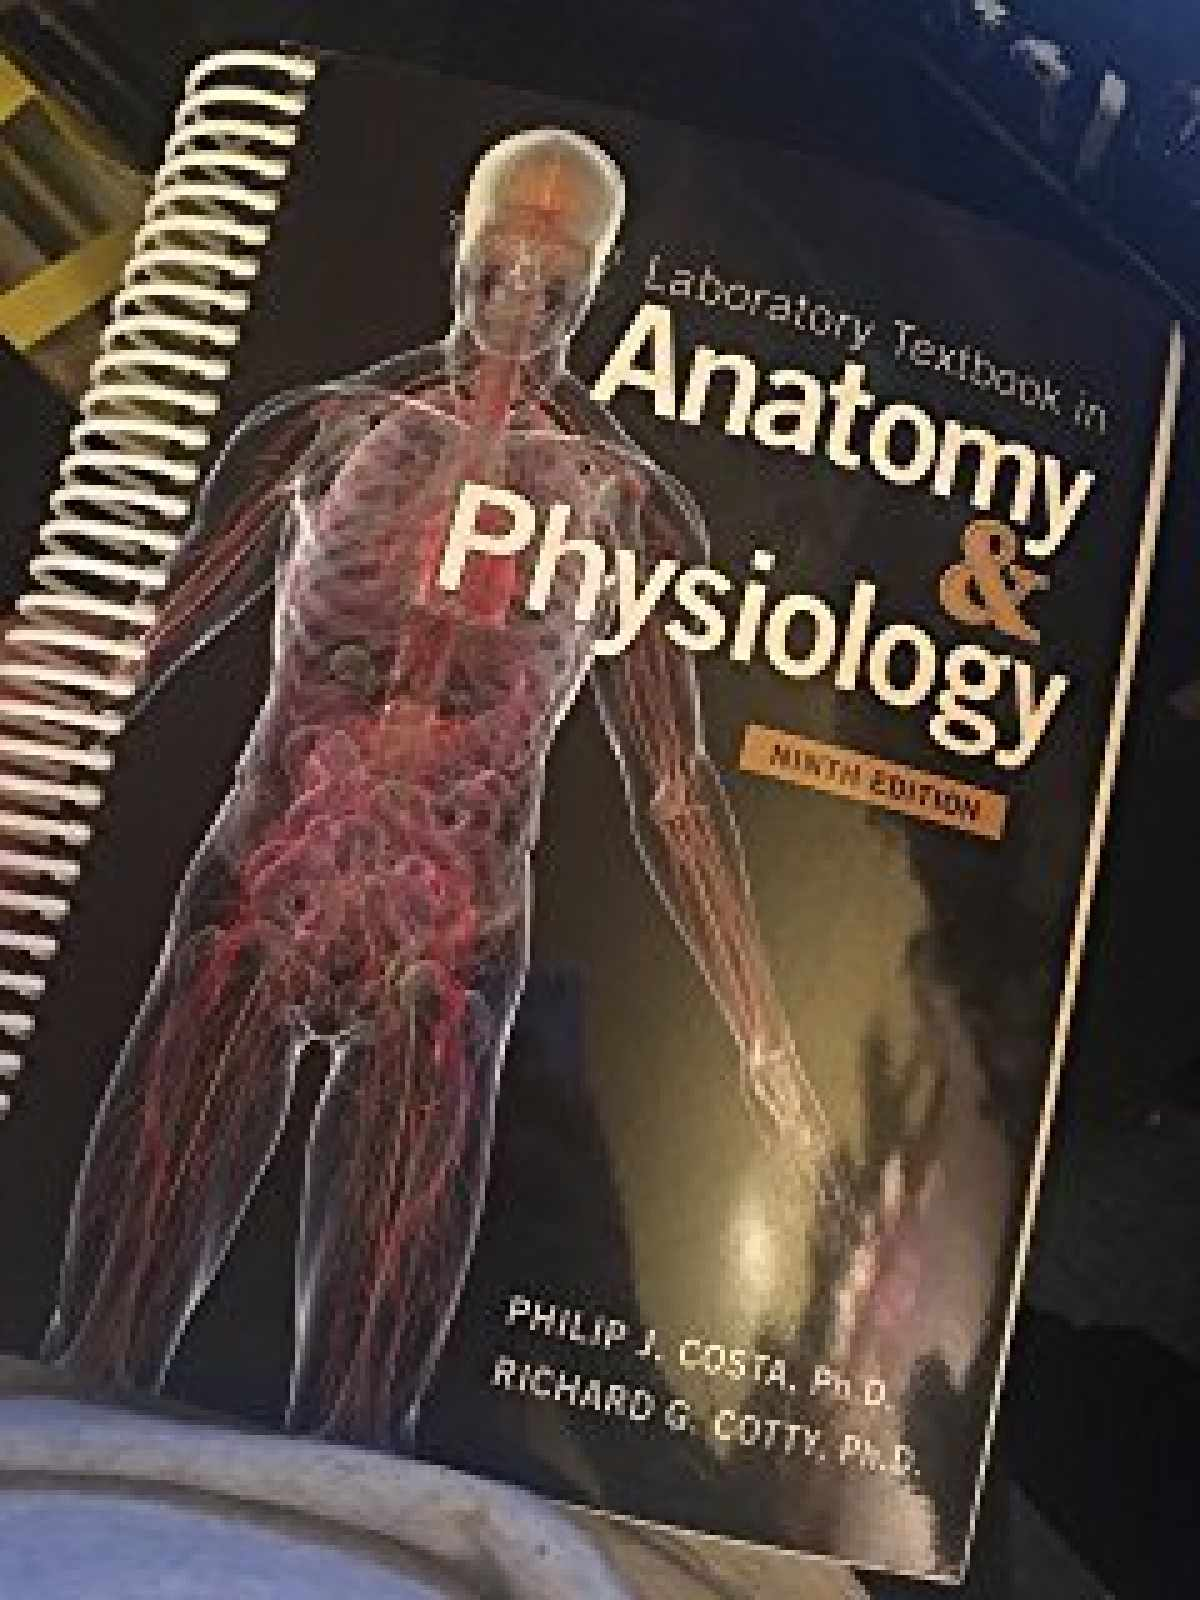 Sell, Buy or Rent Laboratory Textbook in Anatomy